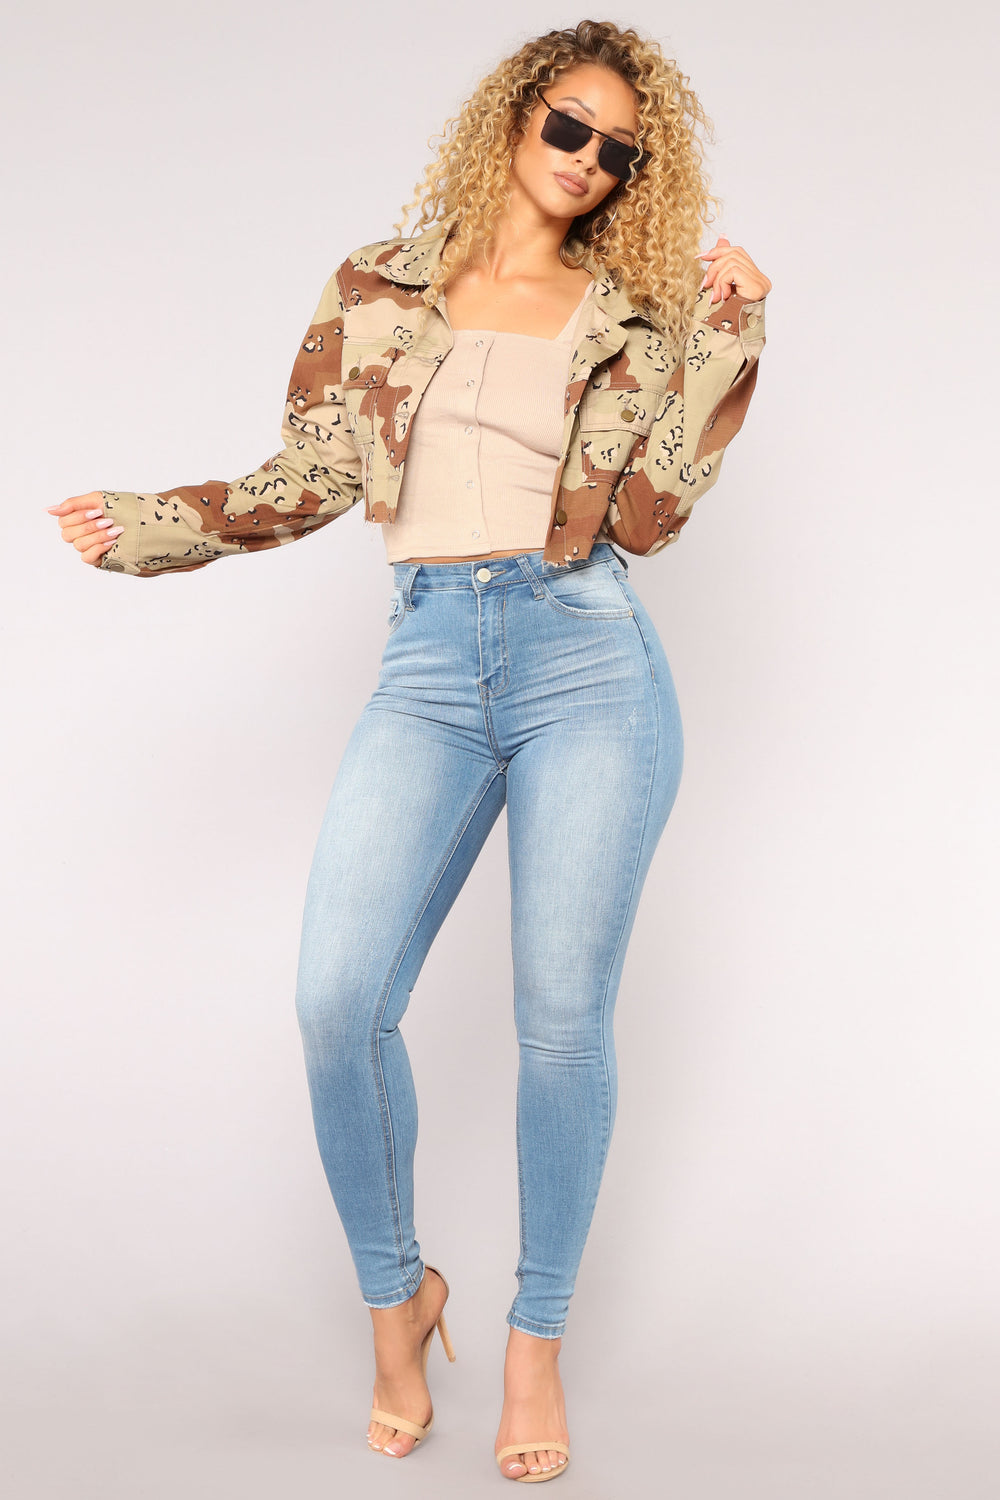 Square Love Affair Top - Taupe